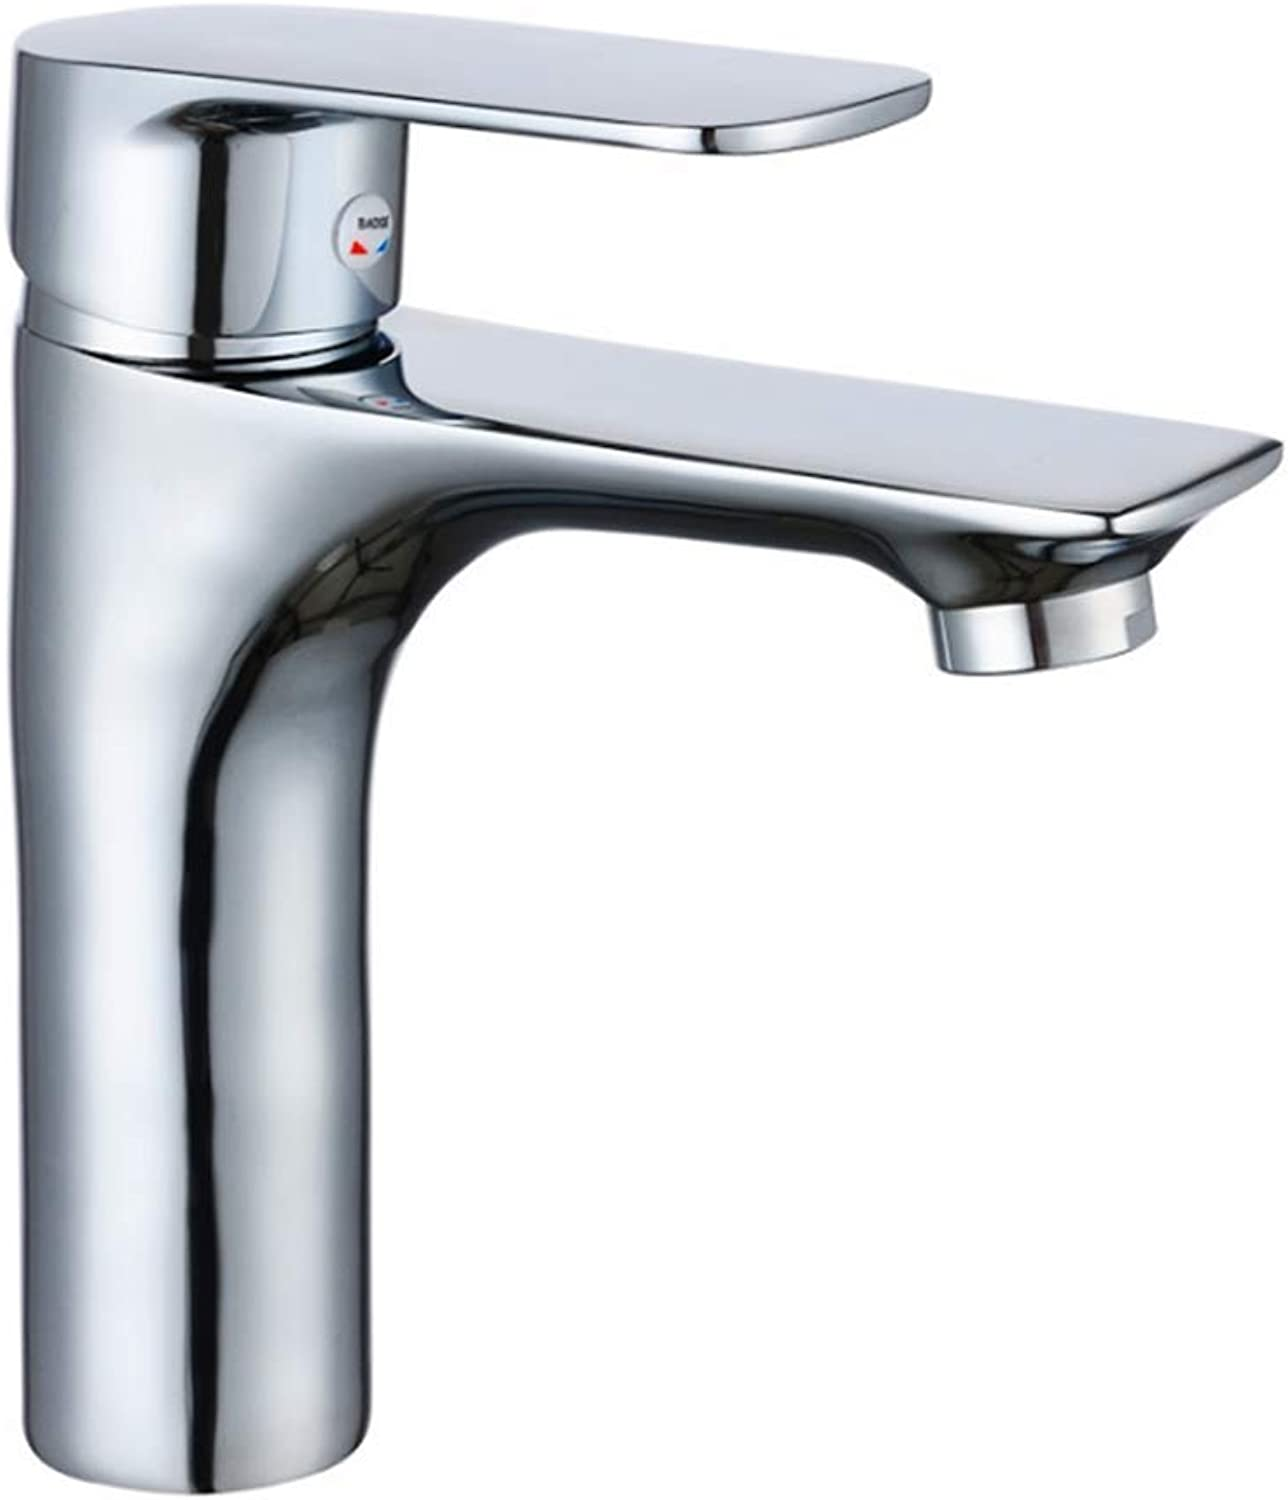 Kitchen Taps Faucet Modern Kitchen Sink Taps Stainless Steelface Basin Faucet Mixed Water Cold and Hot Water Faucet Single Hole Face Basin Faucet